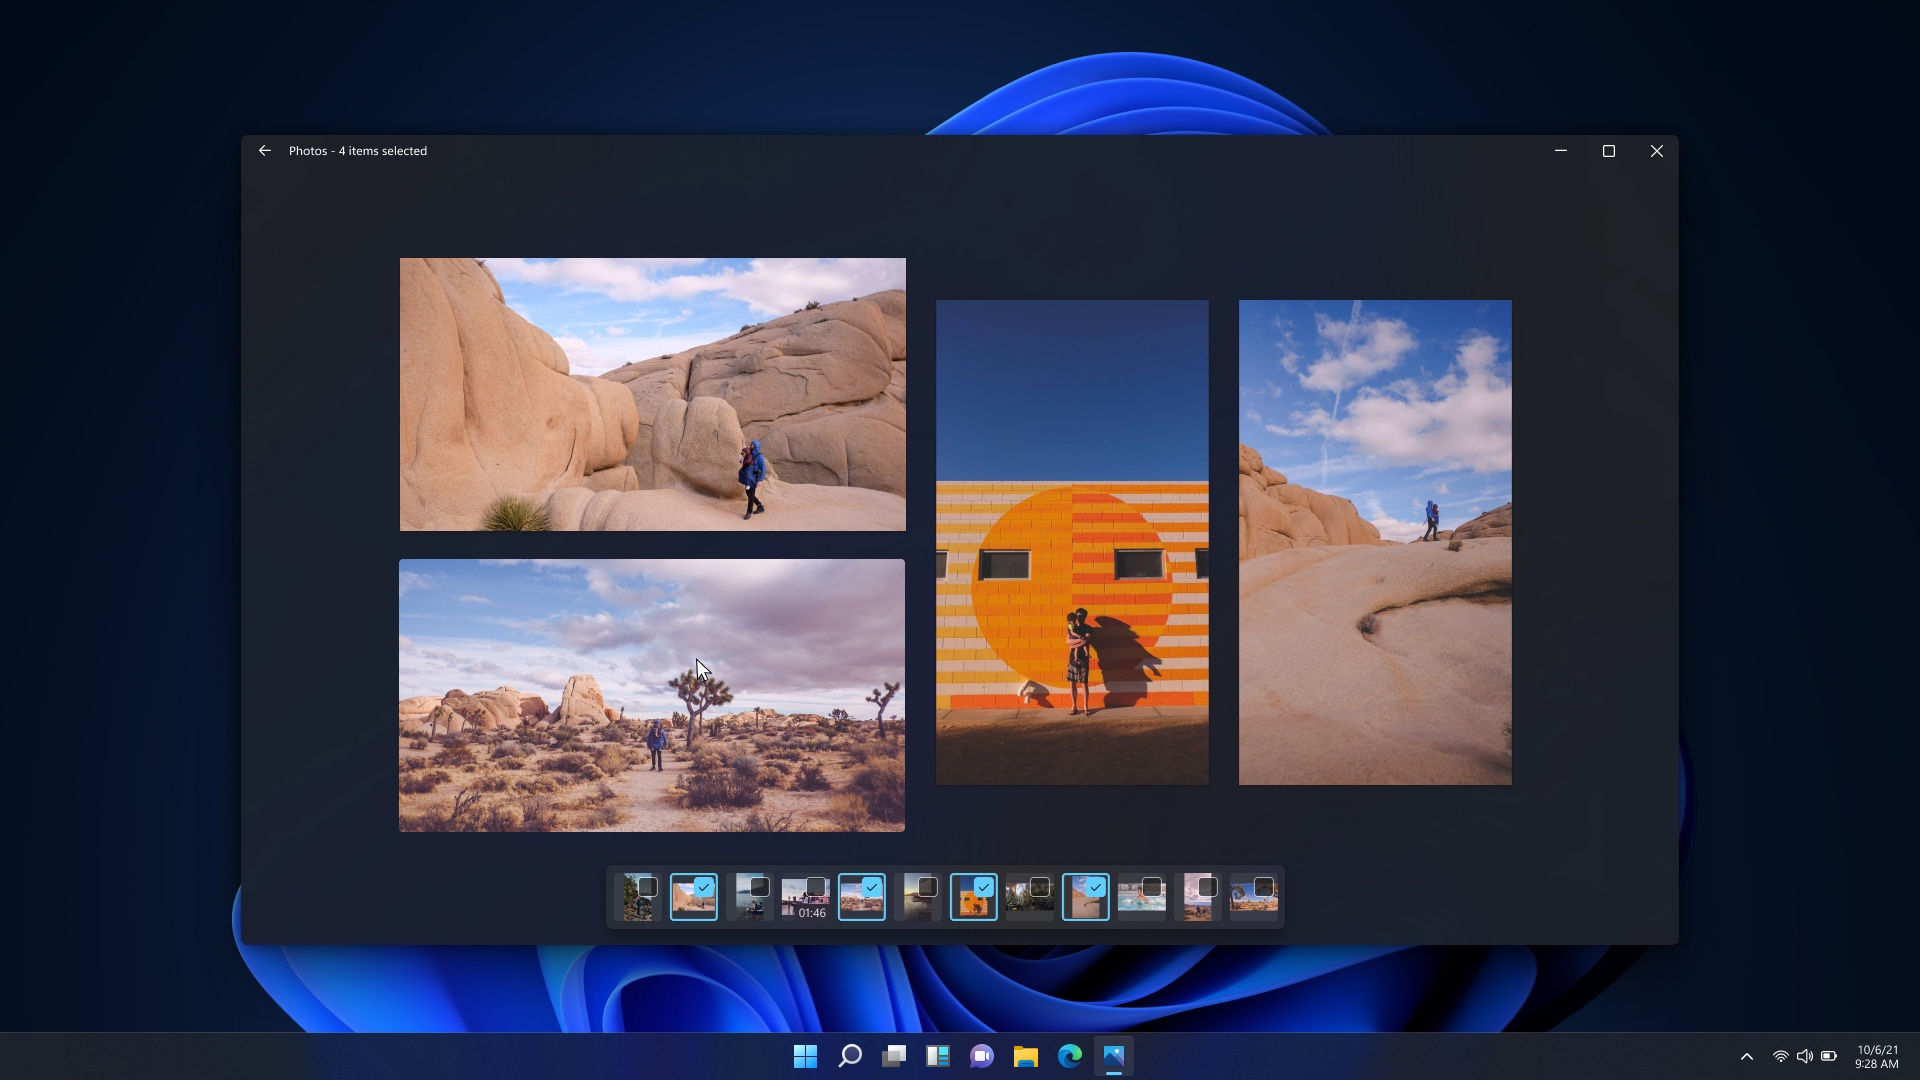 Microsoft's Photos app gets a new look in Windows 11